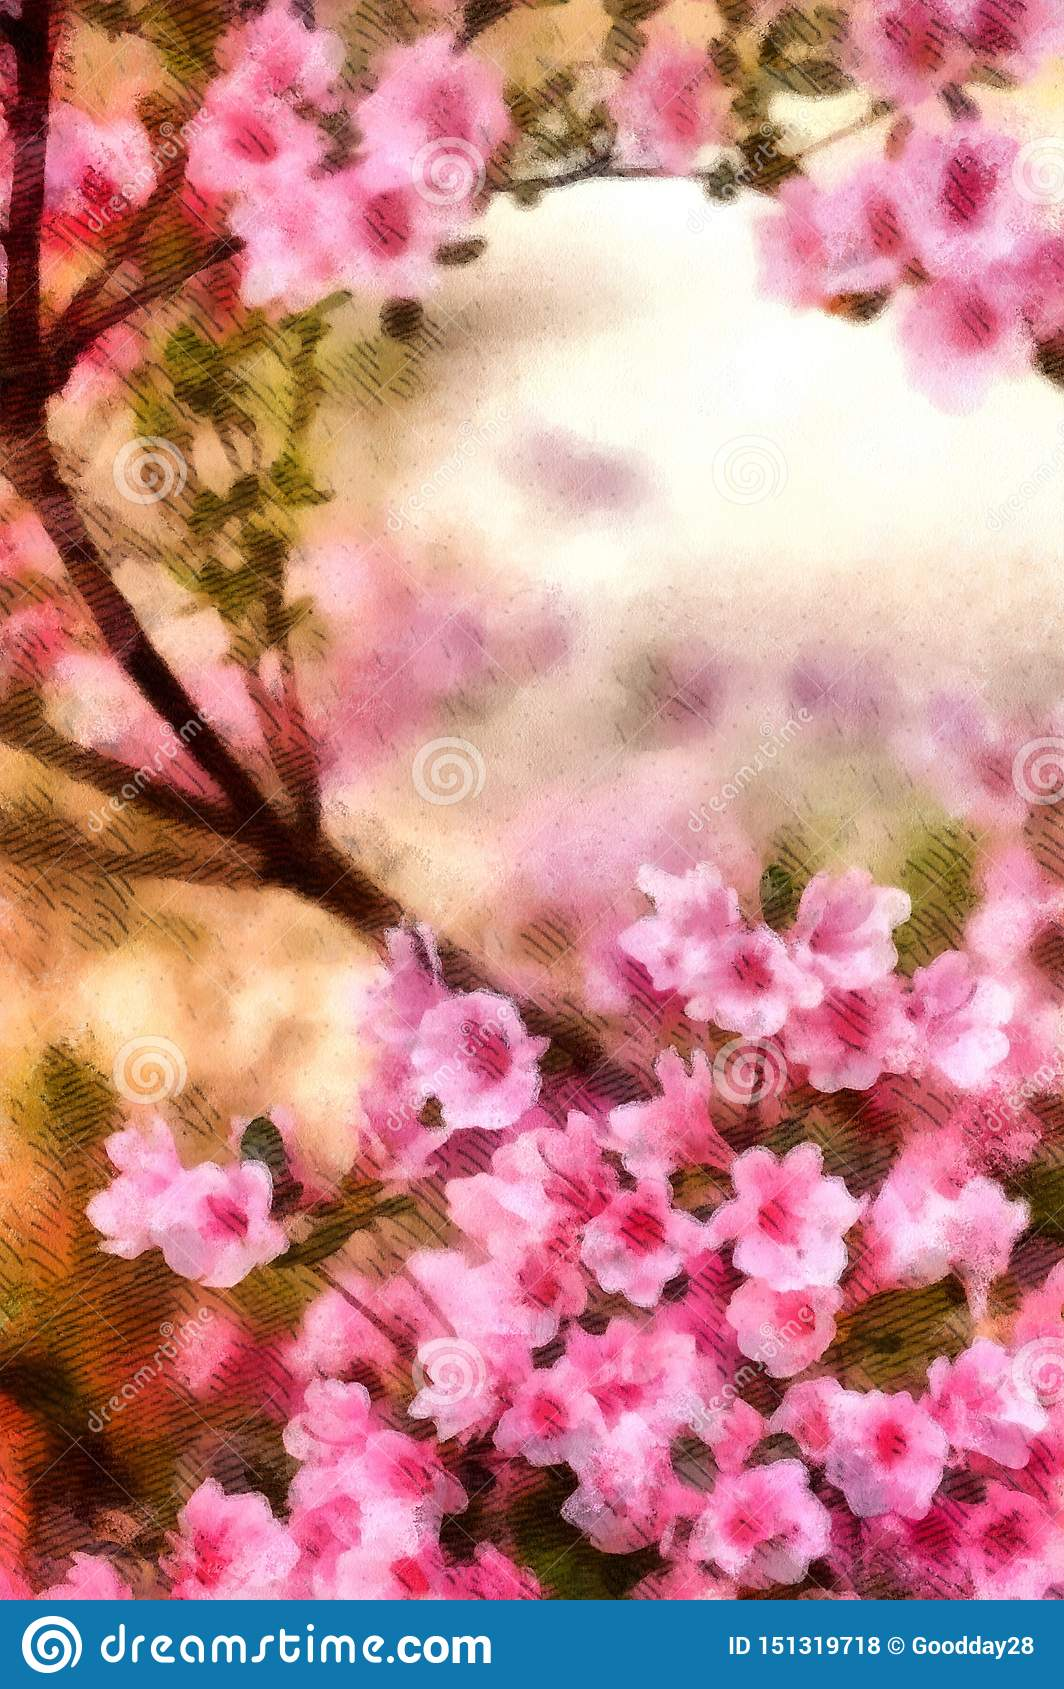 Spring Cherry Blossoms Pink Flowers Watercolor Painting